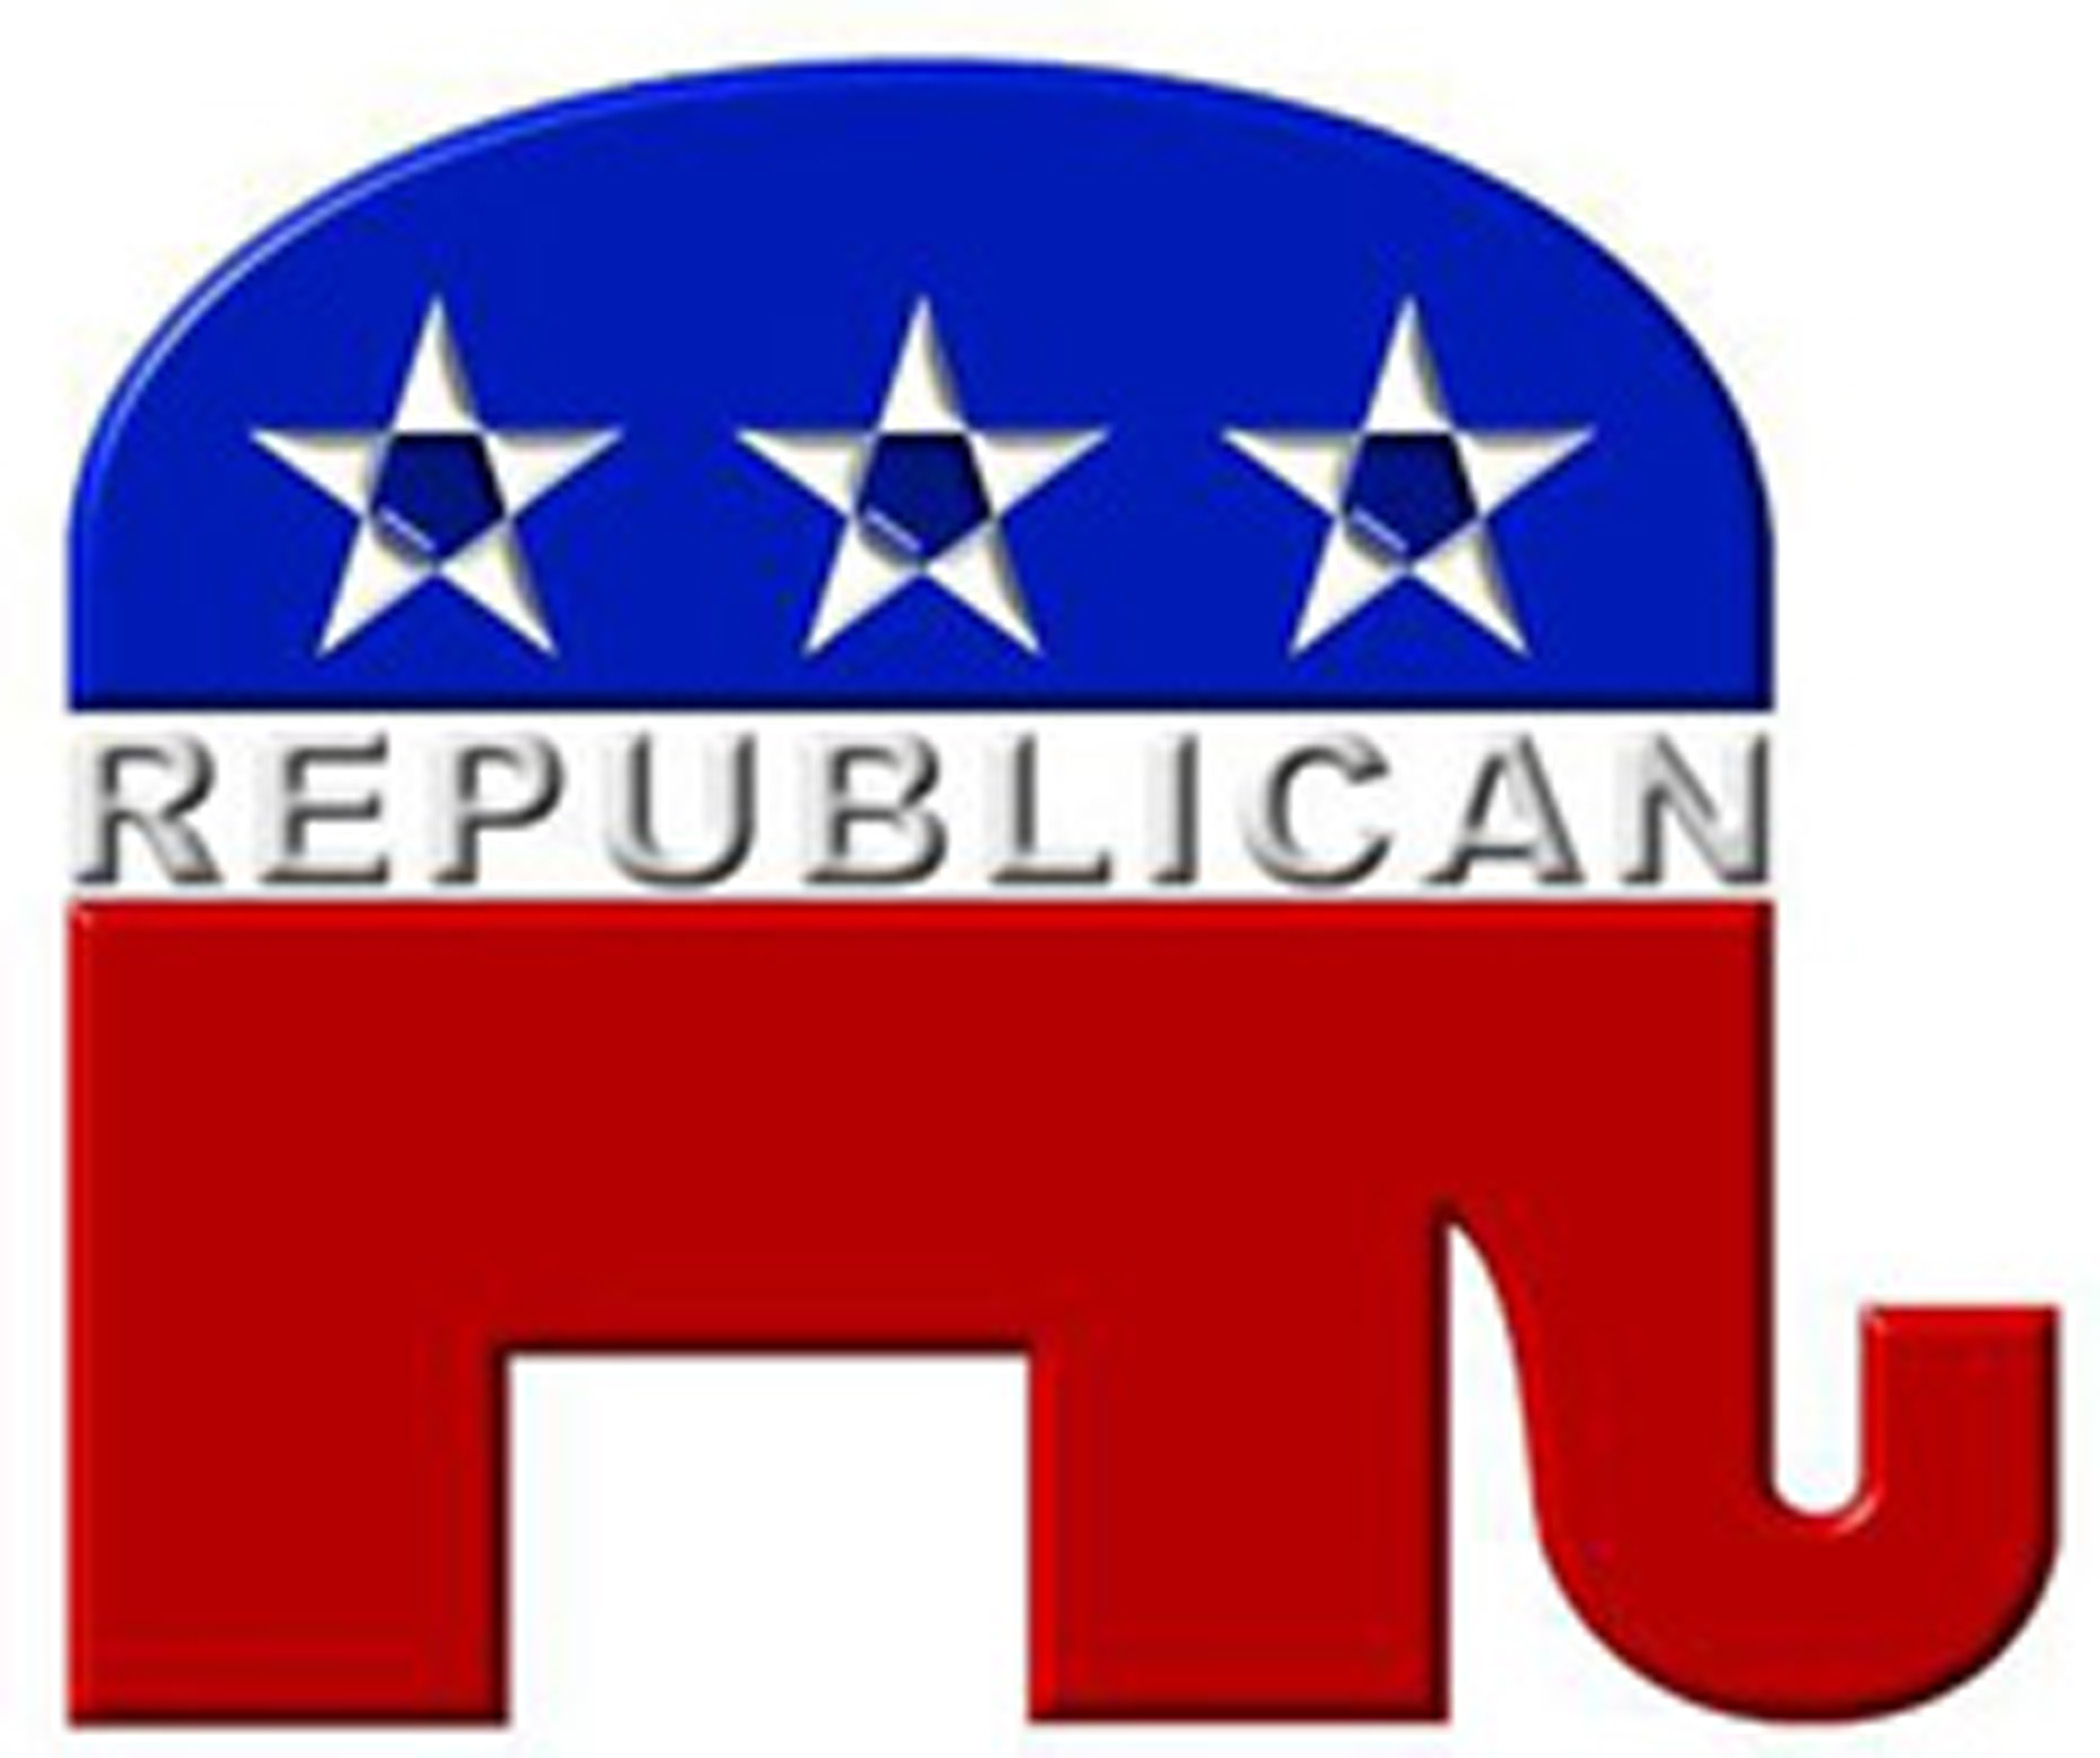 Images For Red Elephant Republican-Images For Red Elephant Republican-7